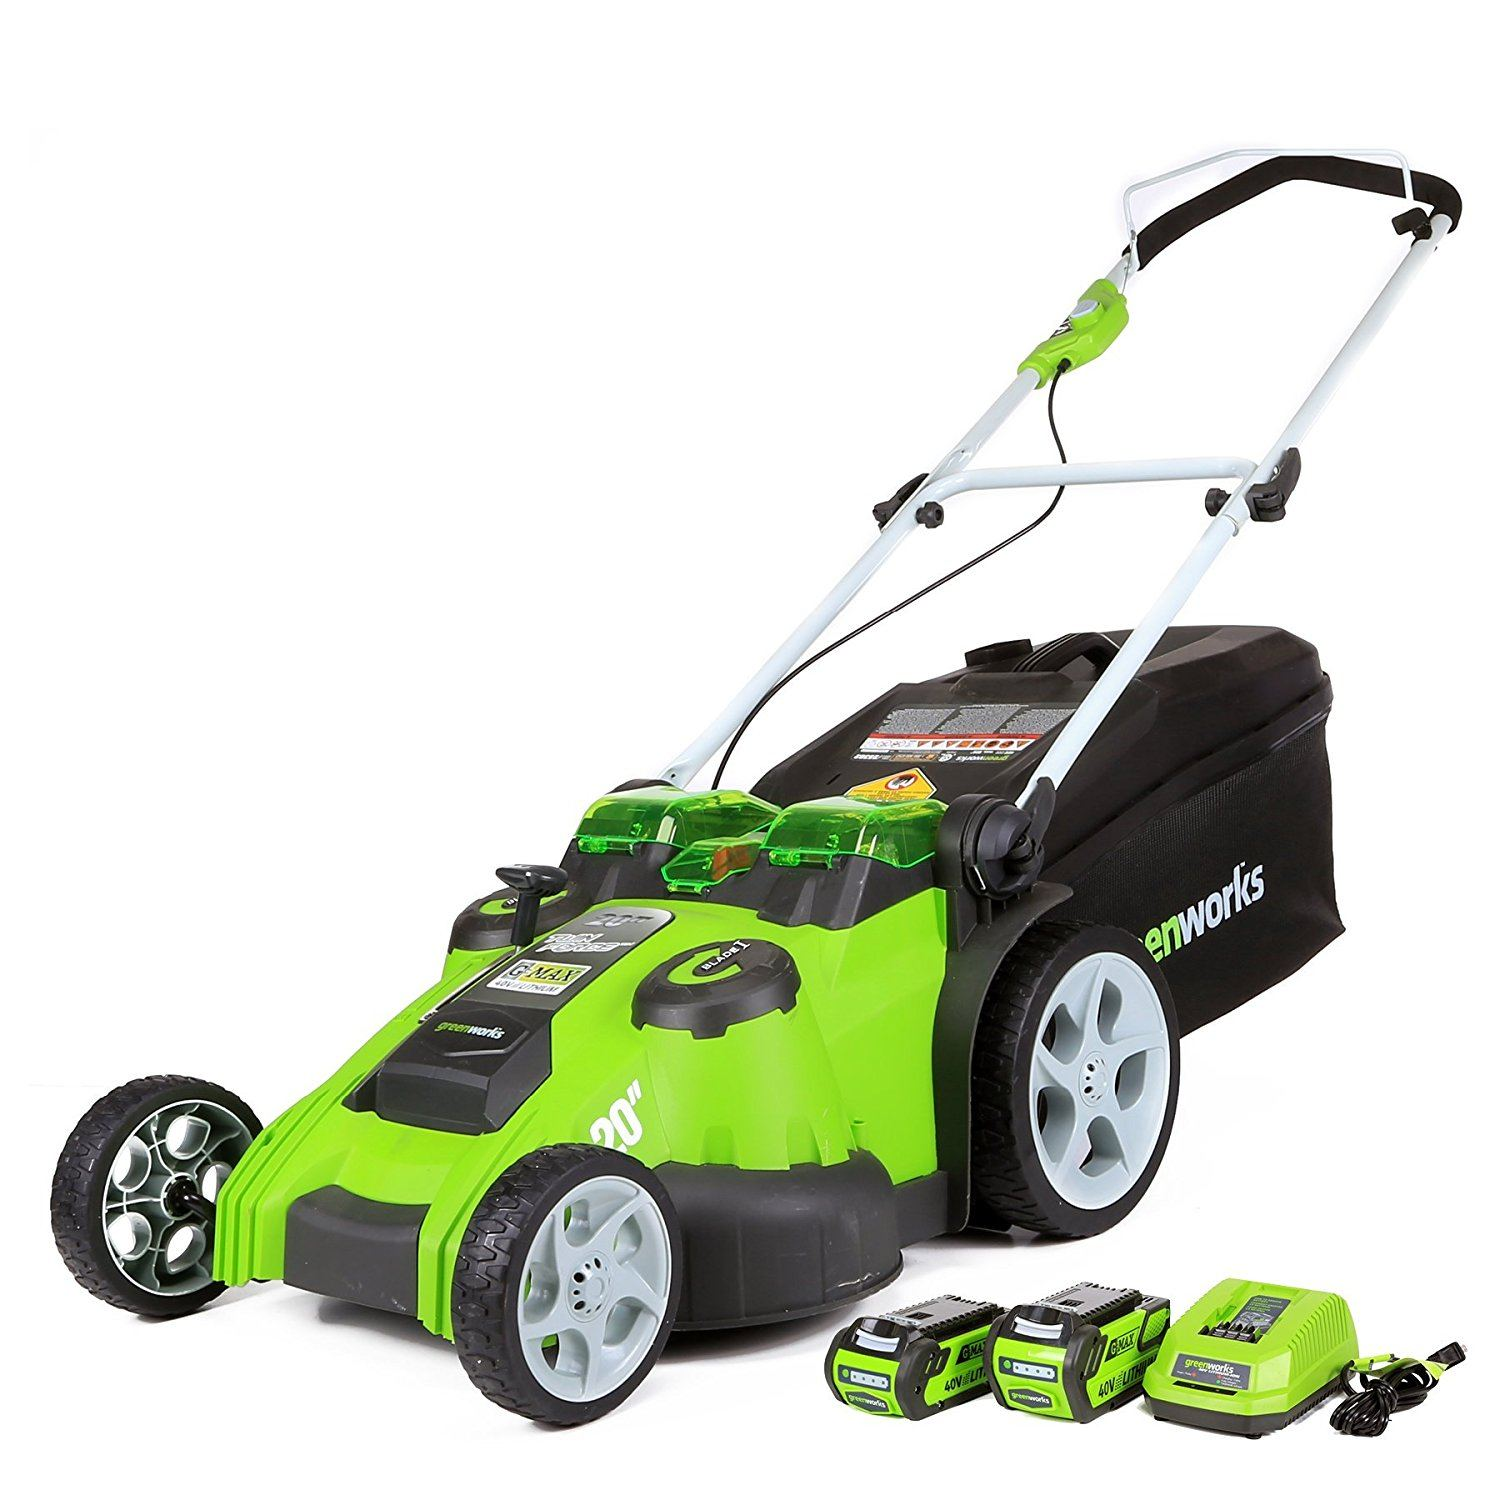 Greenworks Electric Mower Review: Worth The Cost? [HANDS-ON REVIEW]